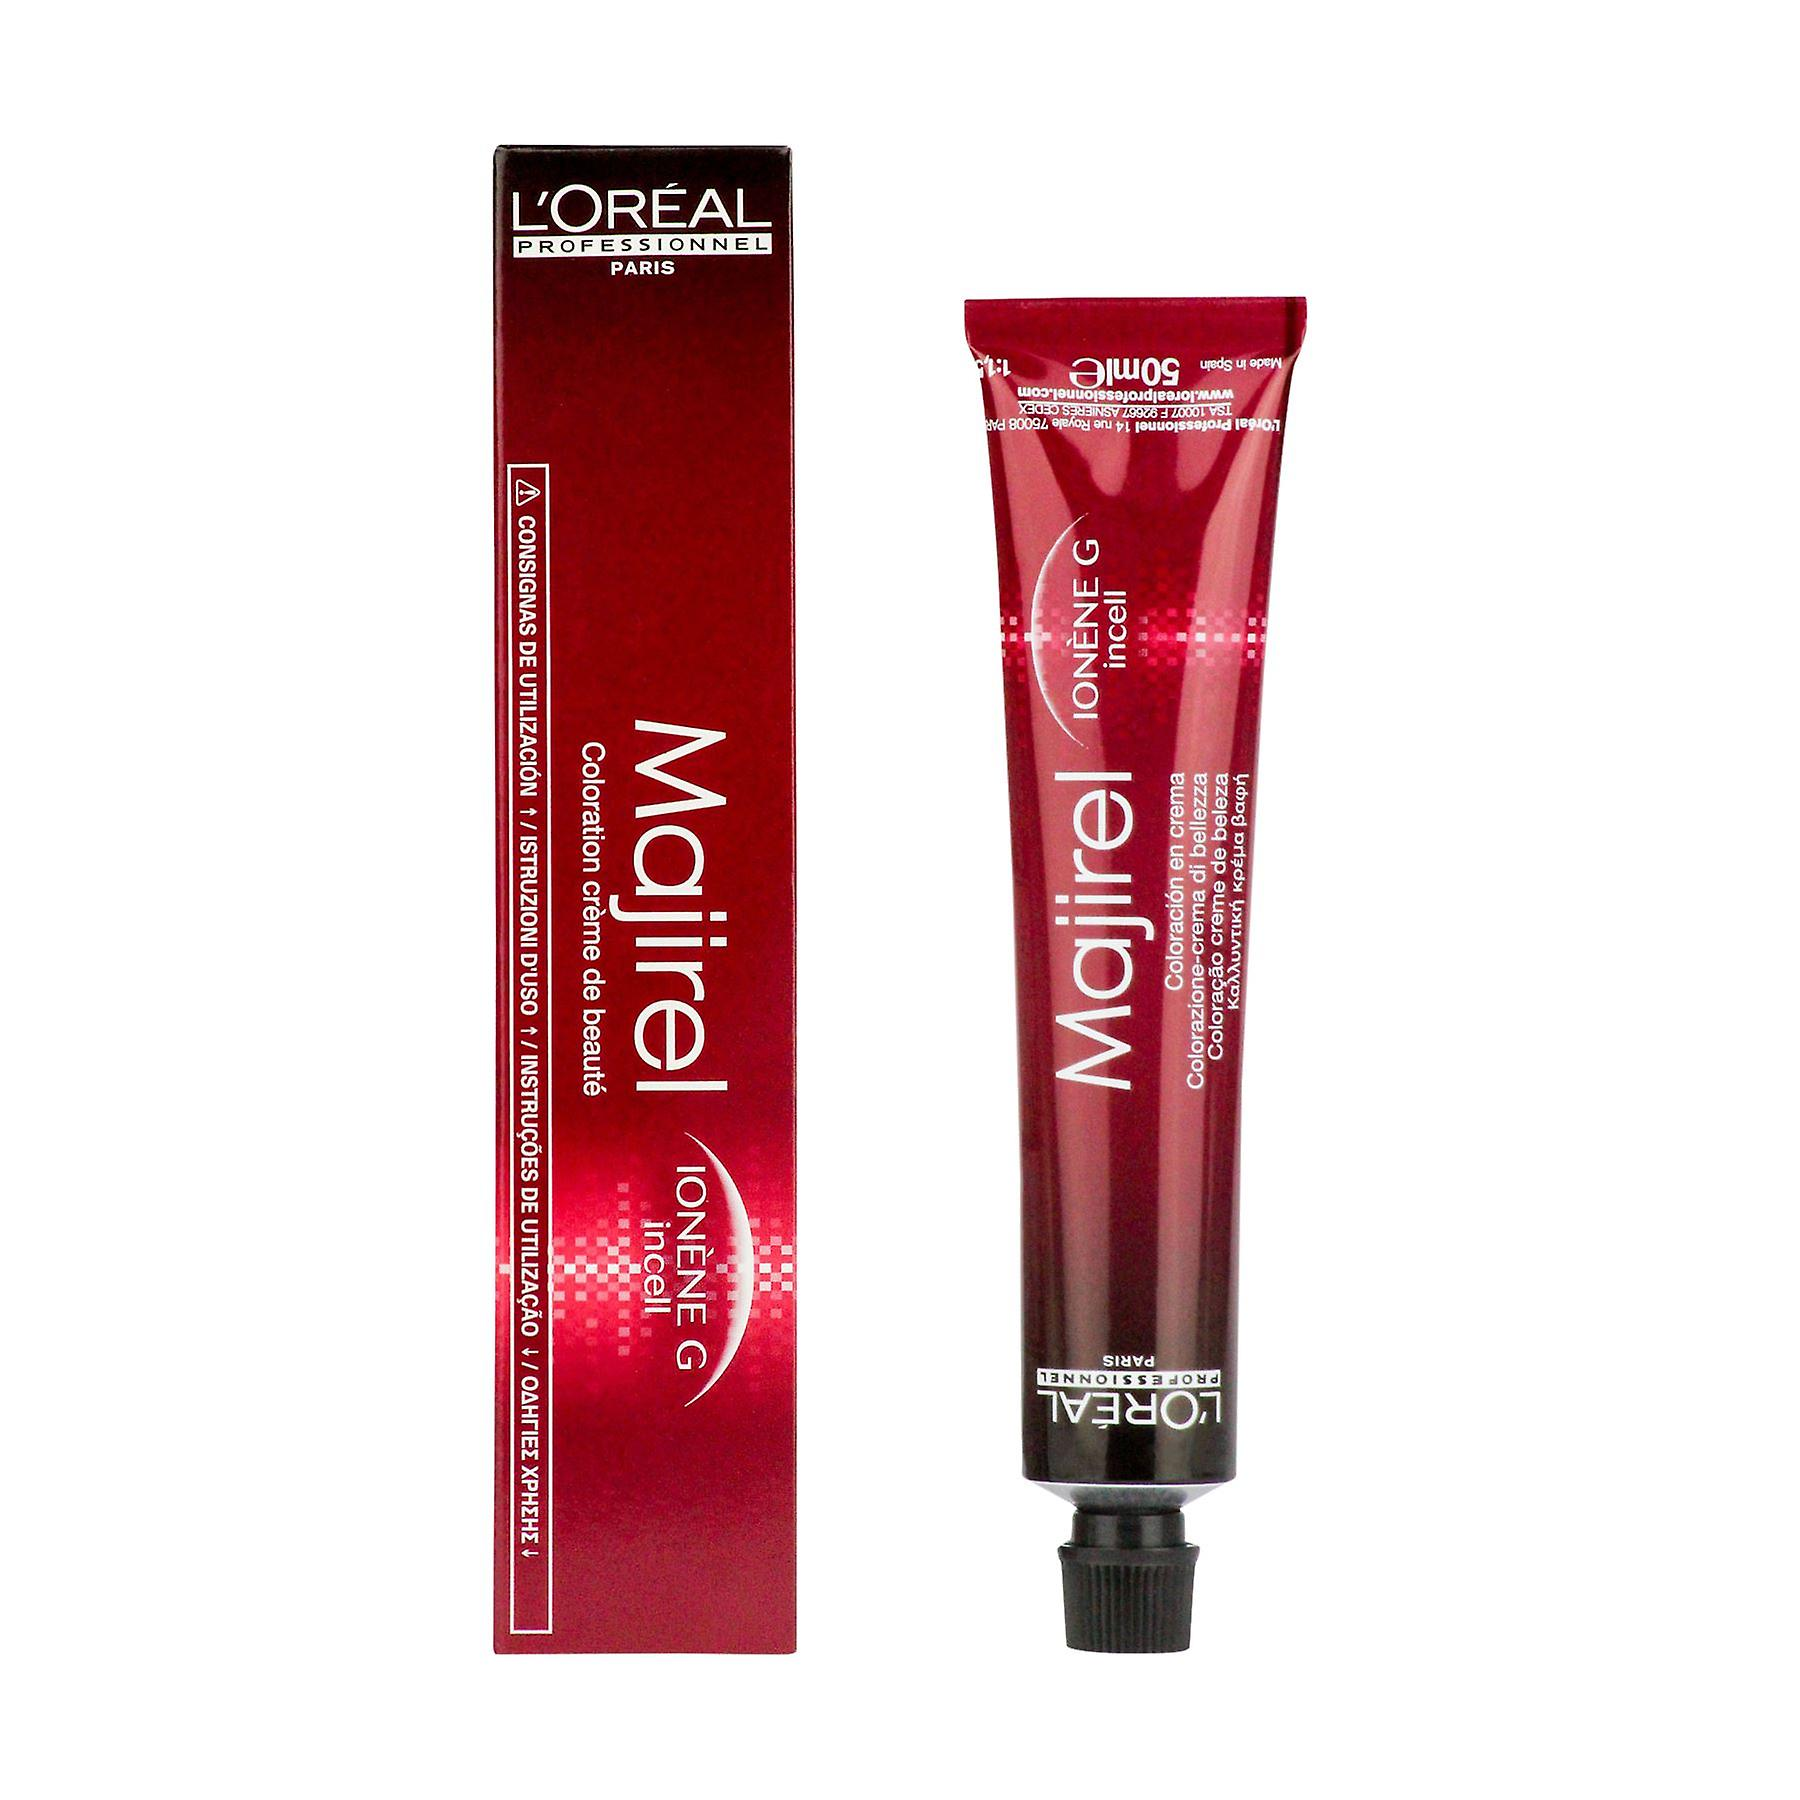 L'Oreal Professionnel Majirel 7, 03 Natural Golden Blonde 50ml